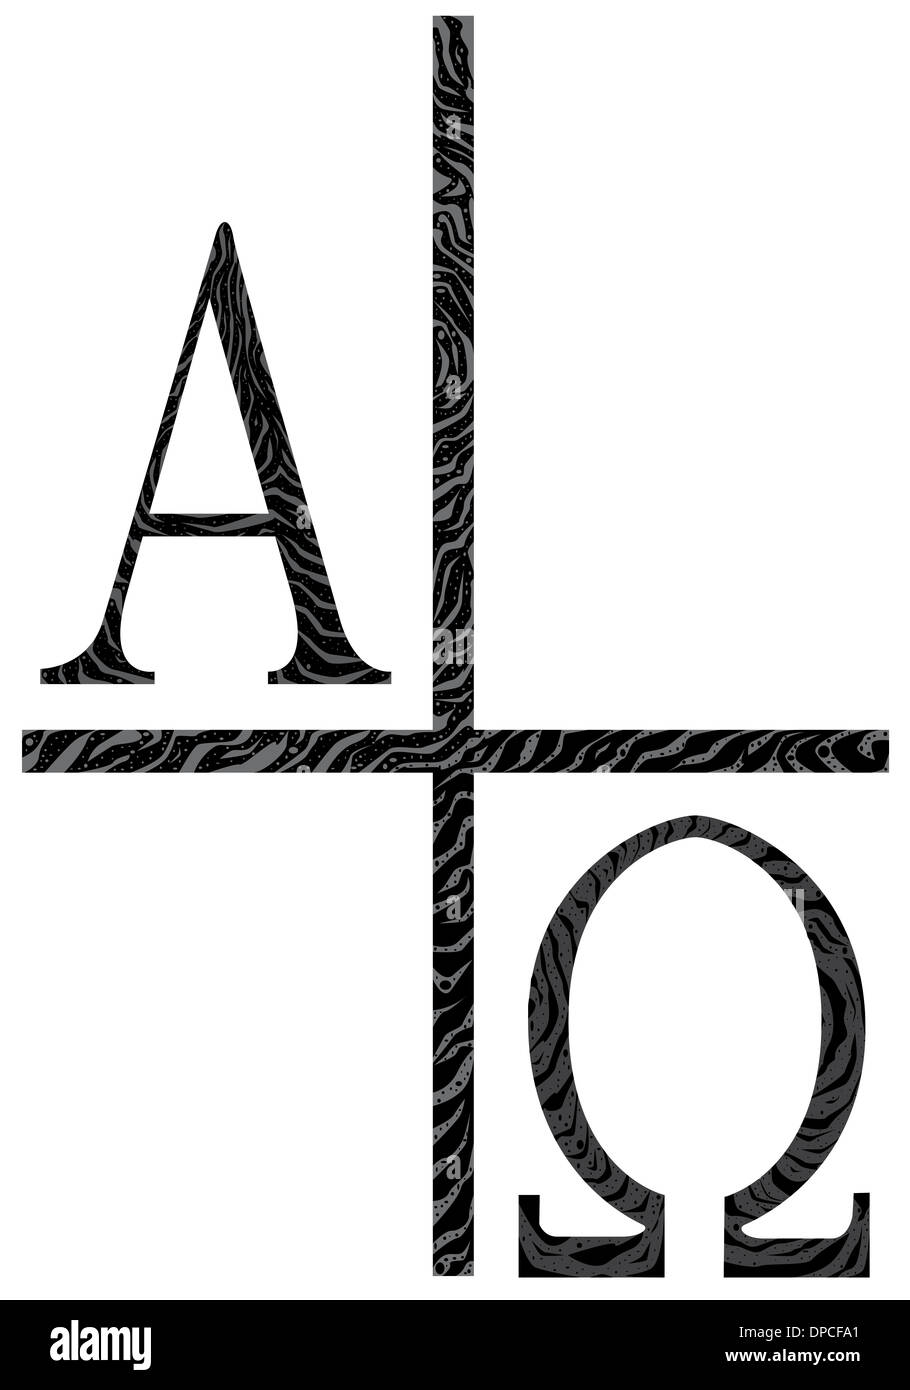 The alpha omega letters from the greek alphabet stock photo the alpha omega letters from the greek alphabet biocorpaavc Gallery